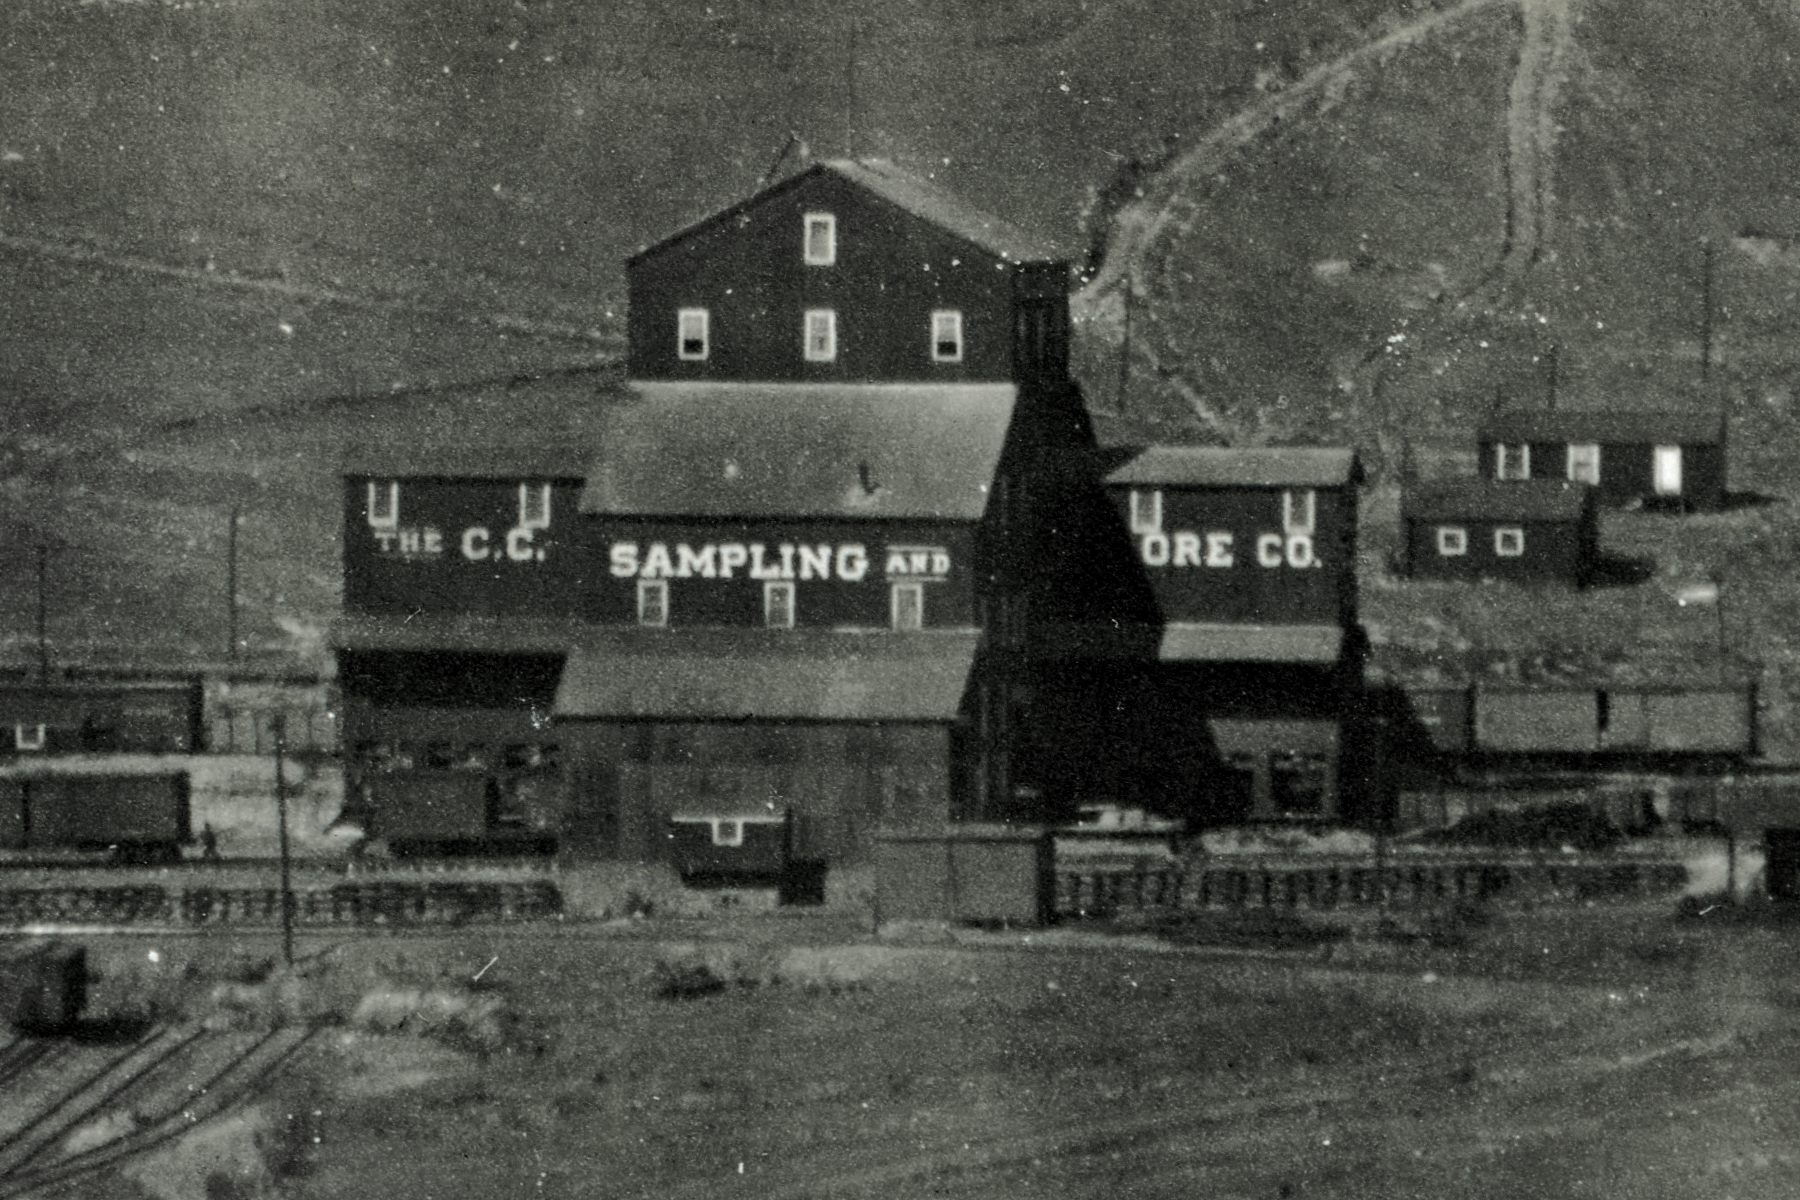 Sadly, not the sharpest view, but I felt this 1200dpi crop and enhanced version is still one of the best views I have of the 'Black Sampler', of the Cripple Creek Sampling Company. The Sampler was also known as the Cripple Creek Sampler, or Bull Hill Works, Bull Hill Sampler, and other names it appears.    Located just beside the Midland Terminal Mainline, it was at one time served by dual gauge as the Golden Circle railroad also had a spur here. Also served by the Short Line I assume as it's Mainline runs straight passed it on the west side (behind it in this view). The photo is from the timeframe the Sampler had Dual Gauge I assume as there are Dual Gauge down to the T. & B. Sampler which is outside this cropped view at lower left.    There are 4 or 5 levels of tracks seen in this view, from the small stub-yard at the T. & B. Sampler seen in lower left, to the M.T. Mainline seen about 1/5 up from the bottom, where the southern leg of their Bull Hill/Victor Pass Wye is seen going down towards lower right-hand corner. Then the 'out business' level of the Sampler is seen, built up on a small crib-wall as I assume there was no room left for a fill due to the closeness to the M.T. mainline. Next level would be the 'business in' level, where there are seen a combination of Boxcars and at least one Gondola car in the view, about 1/3 up from bottom. Last level, if it is a separate level, would be the Short Line mainline grade, I think it is at a higher level but hard to tell for sure on this view.